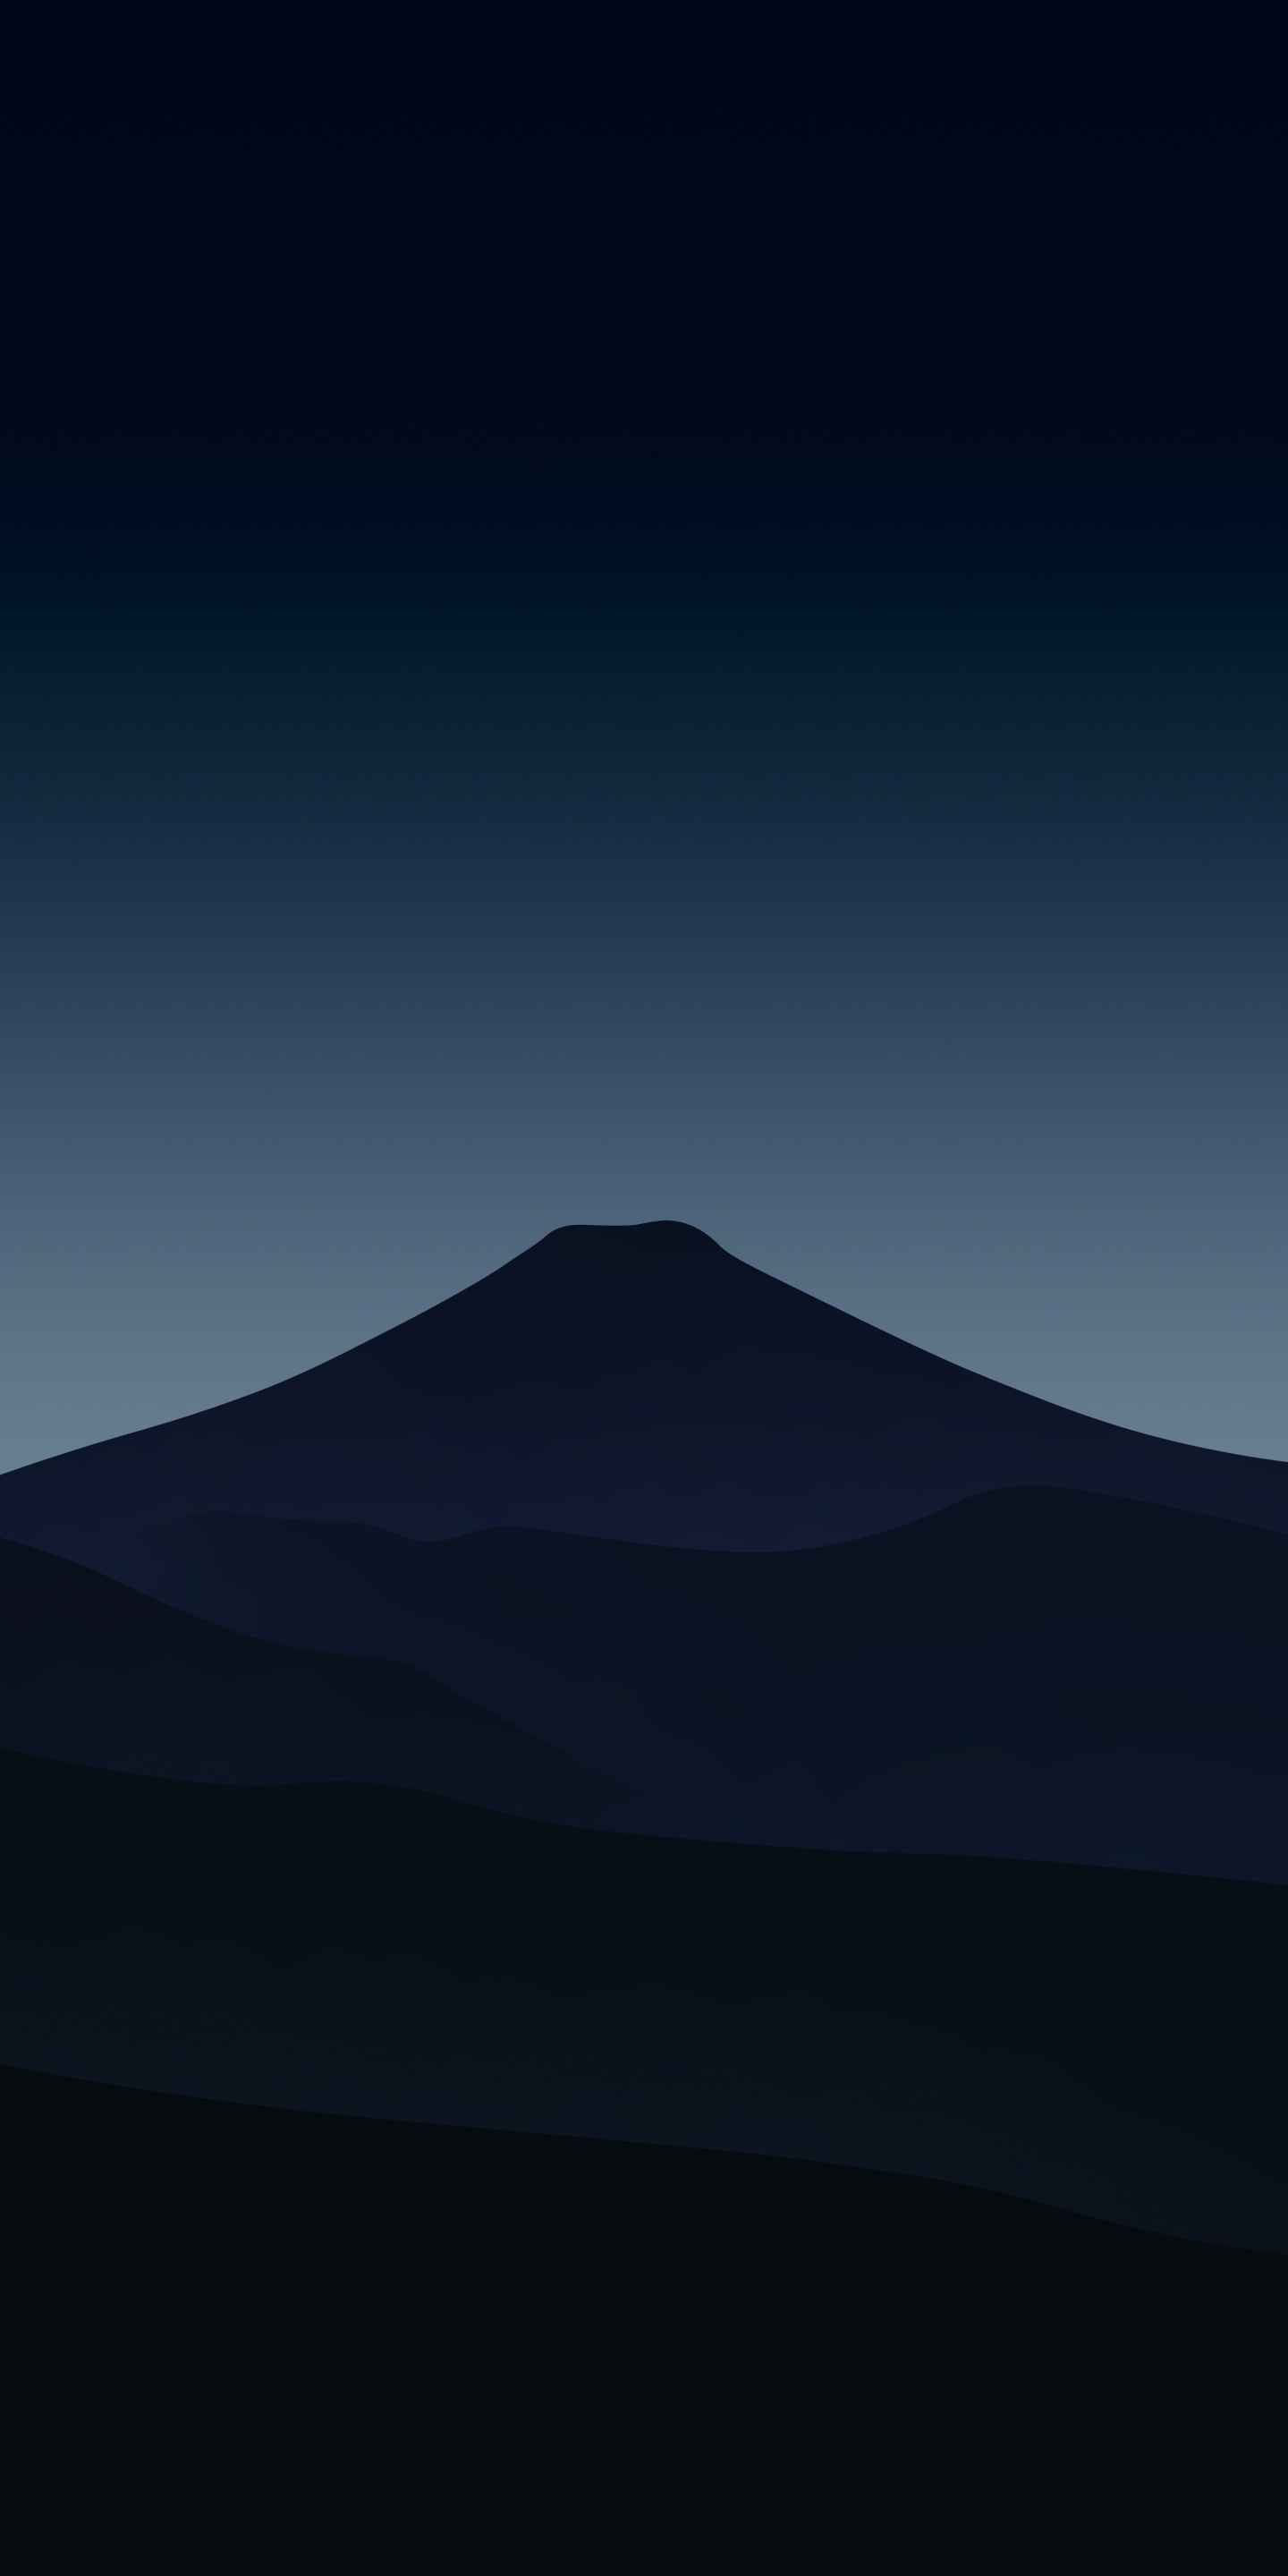 Mount Fuji Minimal iPhone Wallpaper